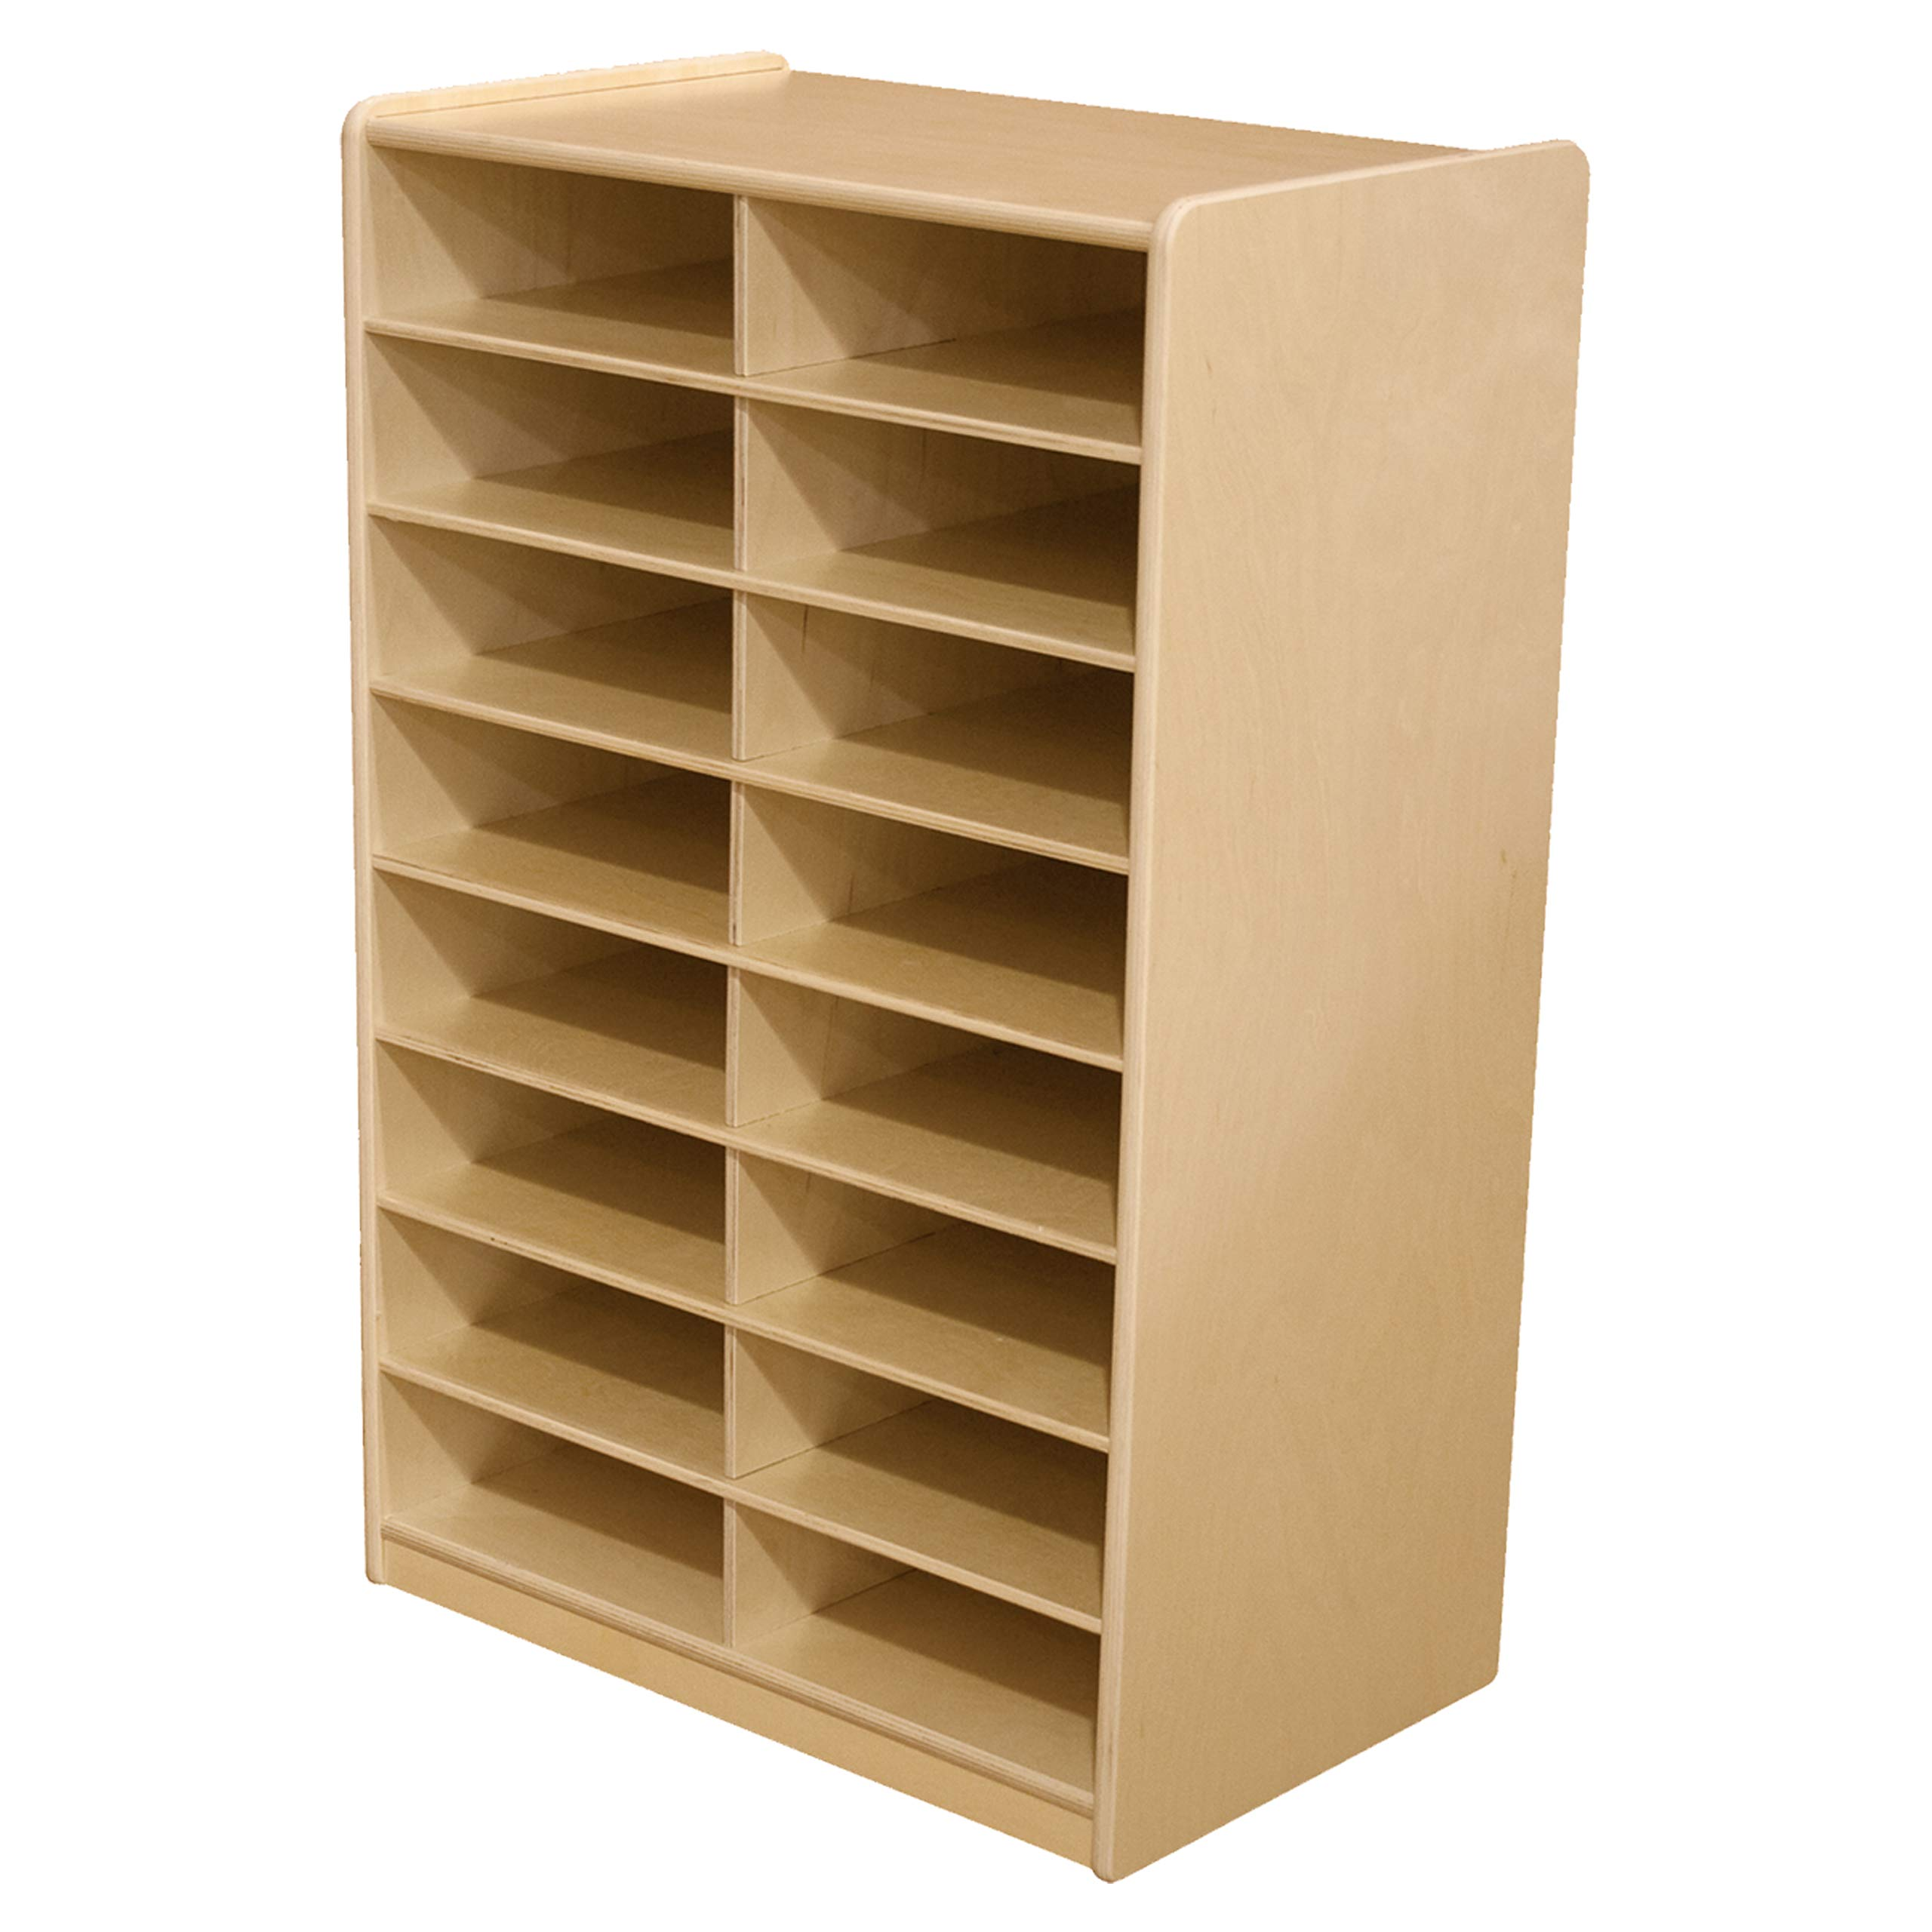 Wood Designs (16) 3'' Letter Tray Storage Unit Without Trays